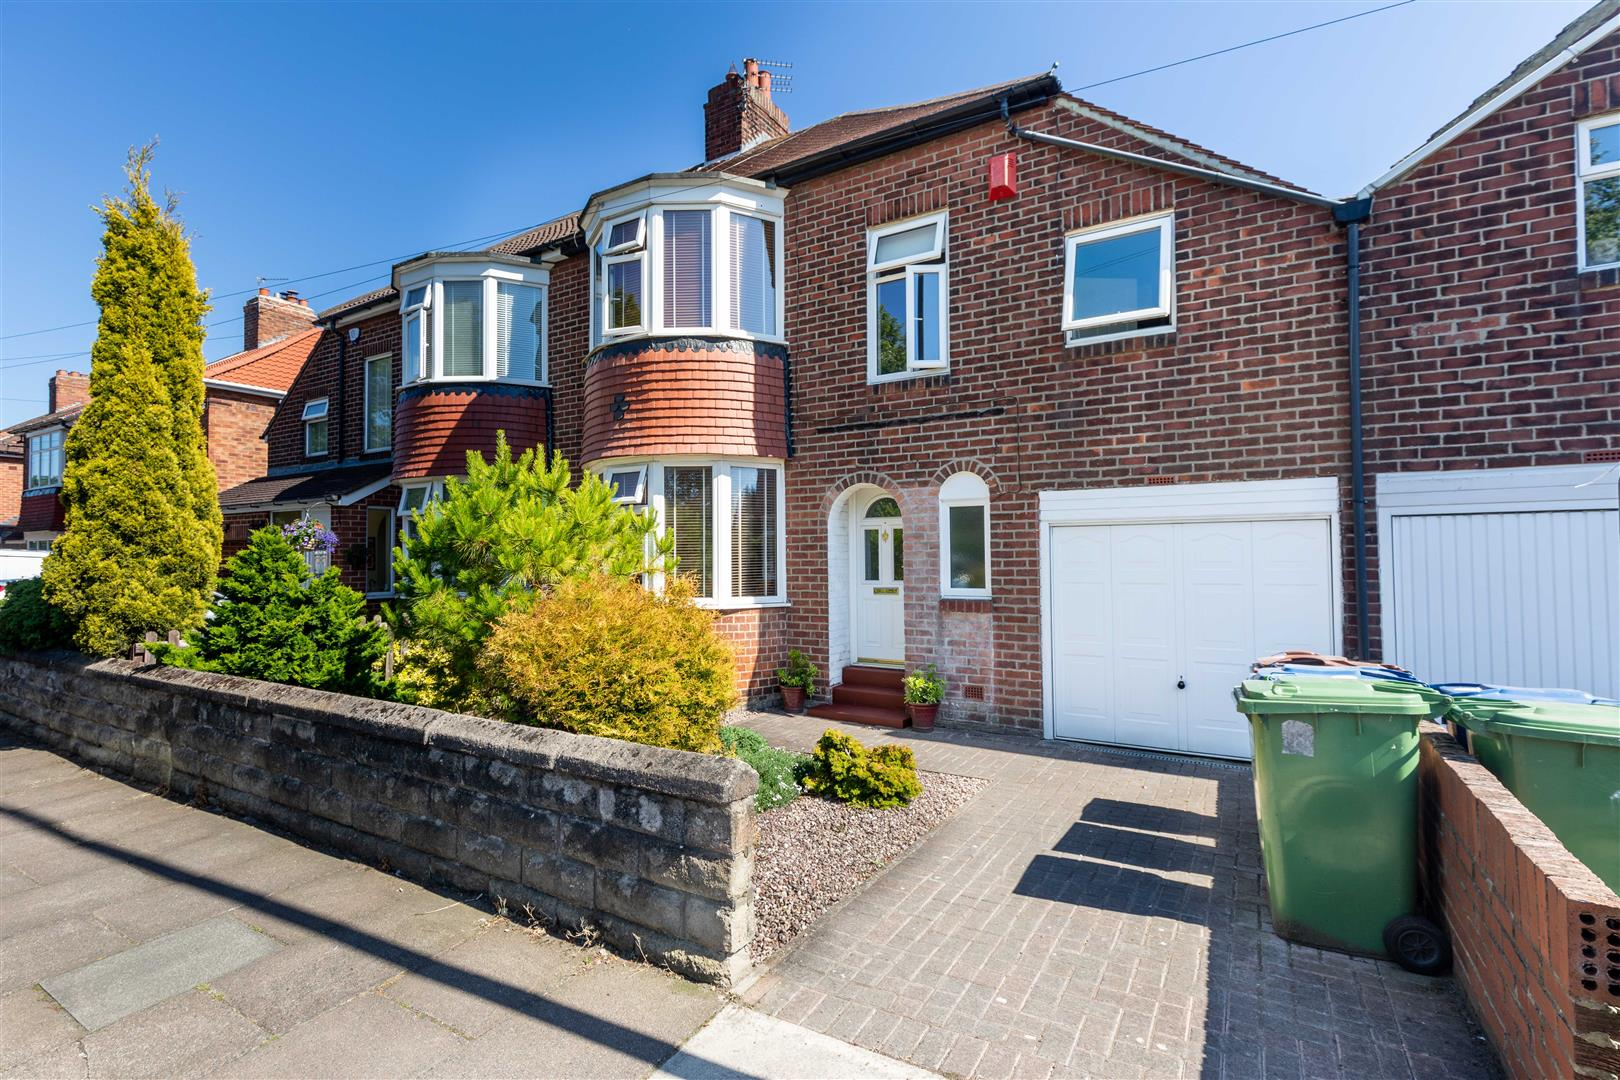 3 bed semi-detached house for sale in Newcastle Upon Tyne, NE7 7JX - Property Image 1